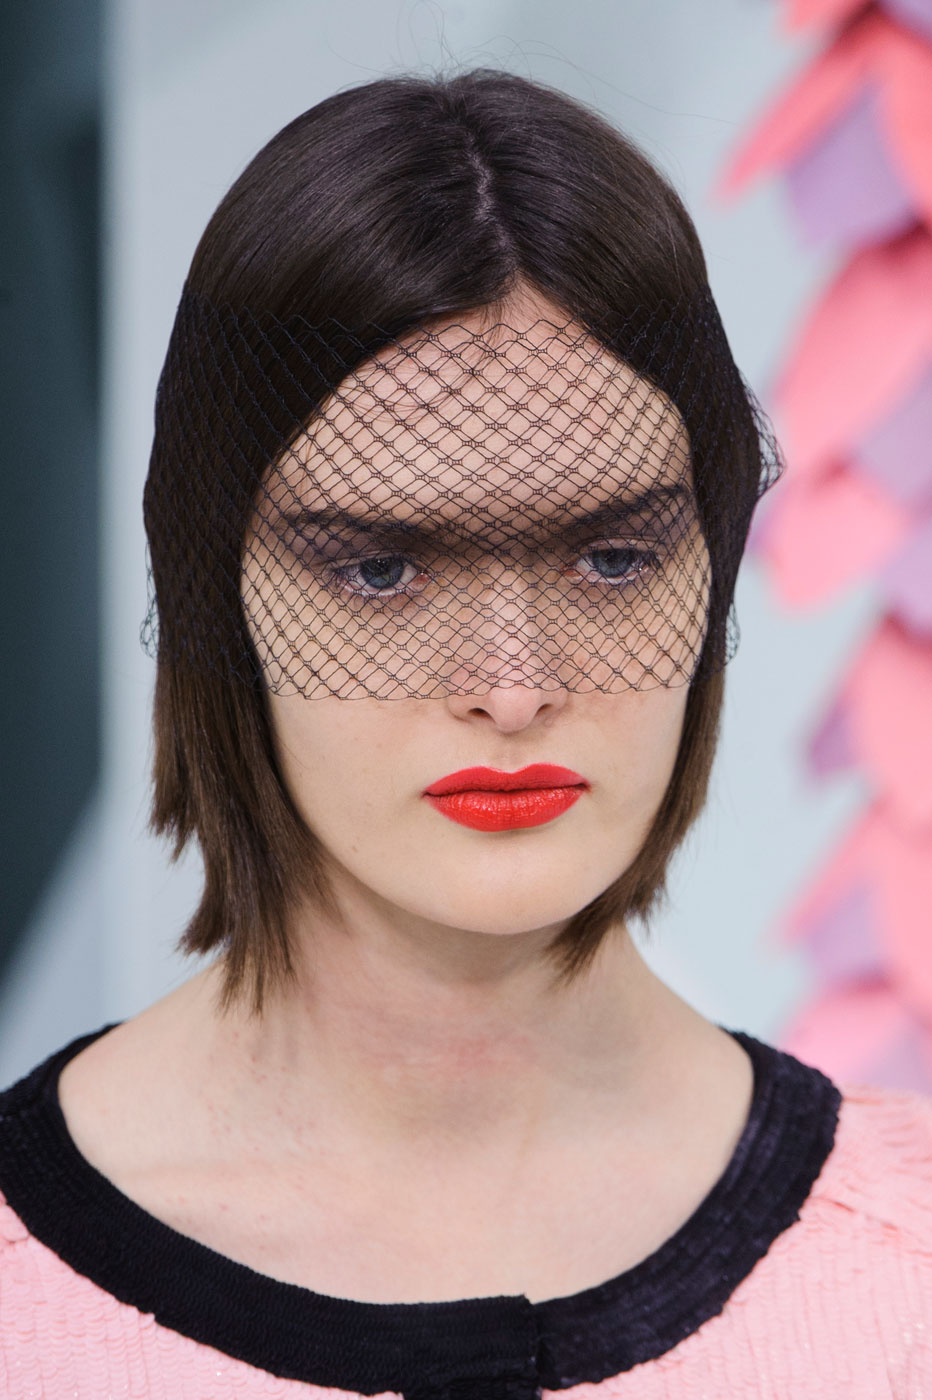 Chanel-fashion-runway-show-close-ups-haute-couture-paris-spring-summer-2015-the-impression-109